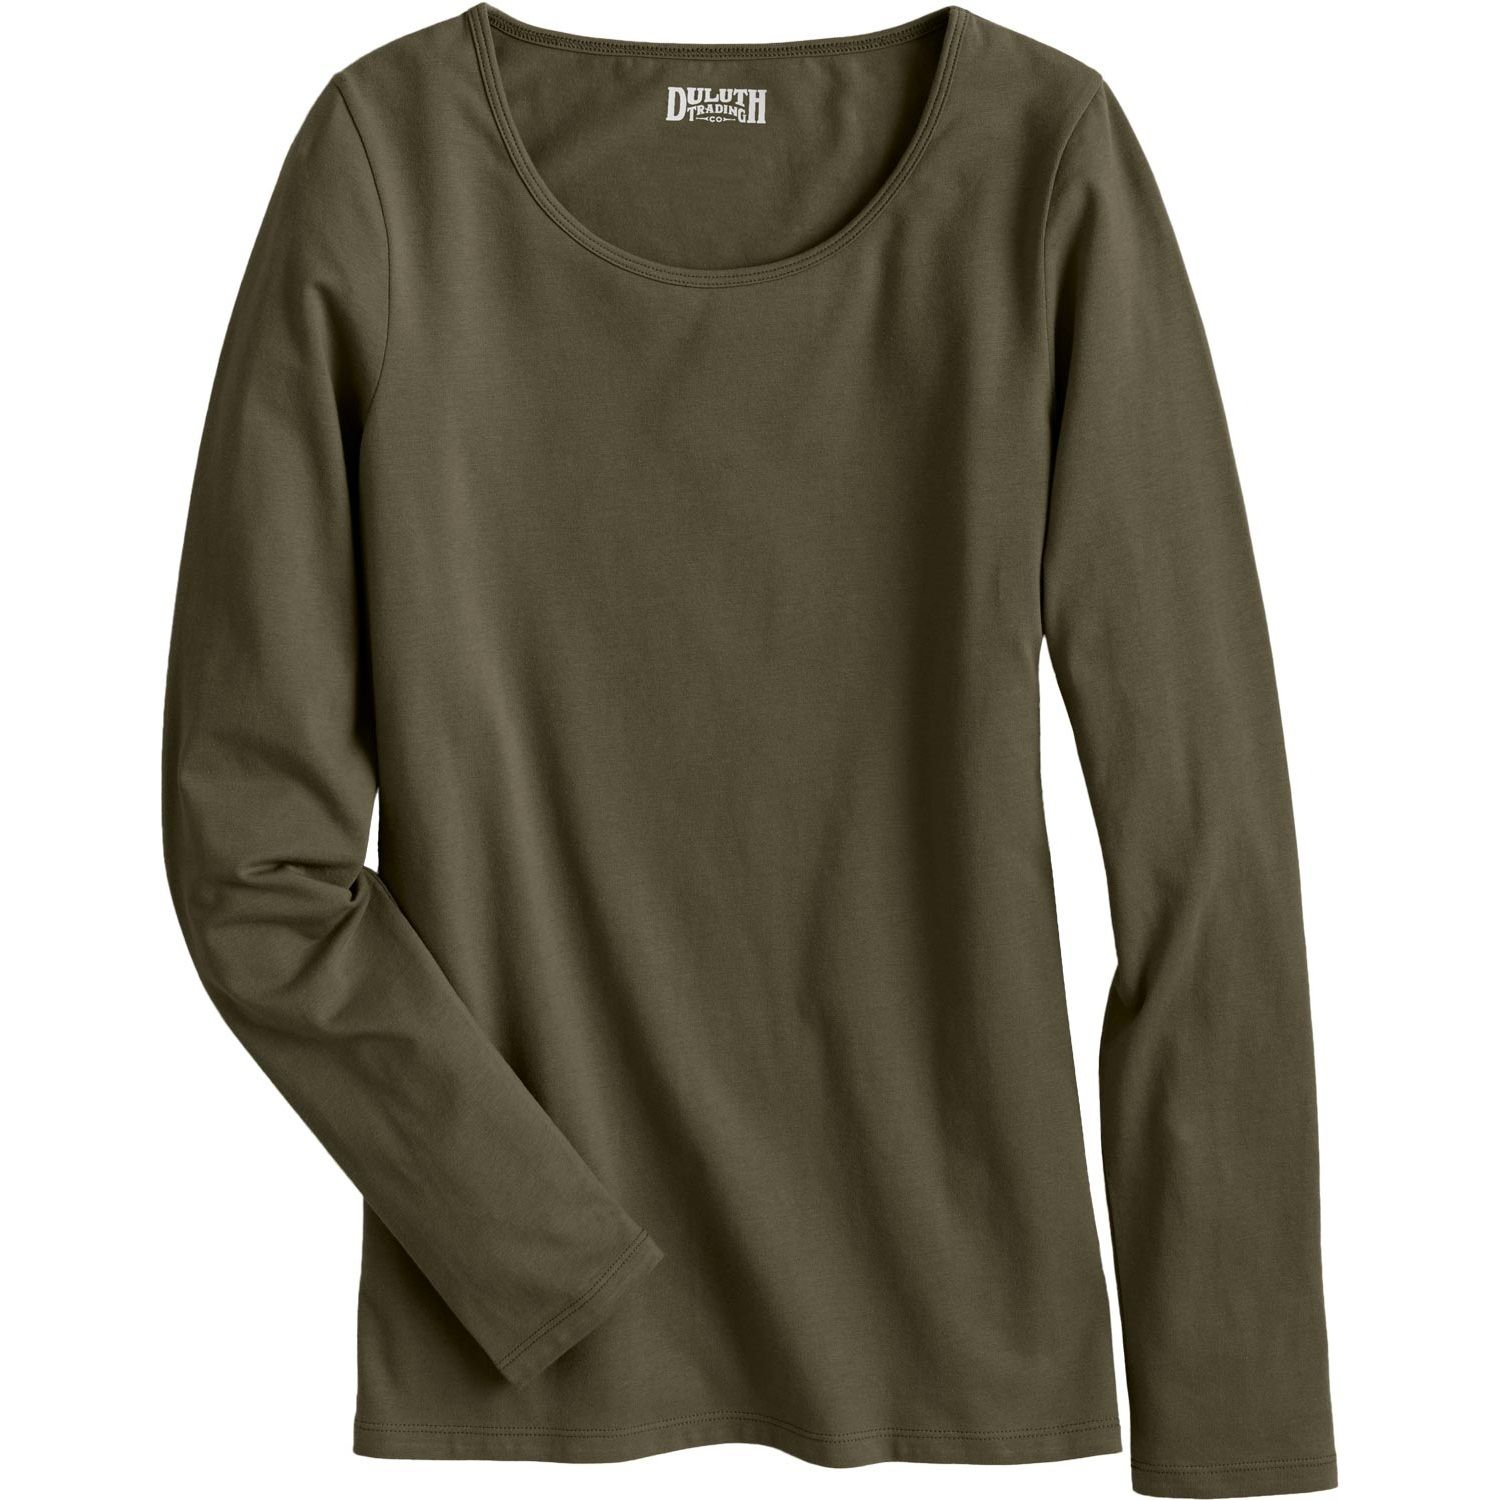 The No-Yank Long Sleeve Scoop Neck T Shirt combines organic cotton with stretch to create a shirt that stays put. Quit tusslin' with your tee and go yank free!